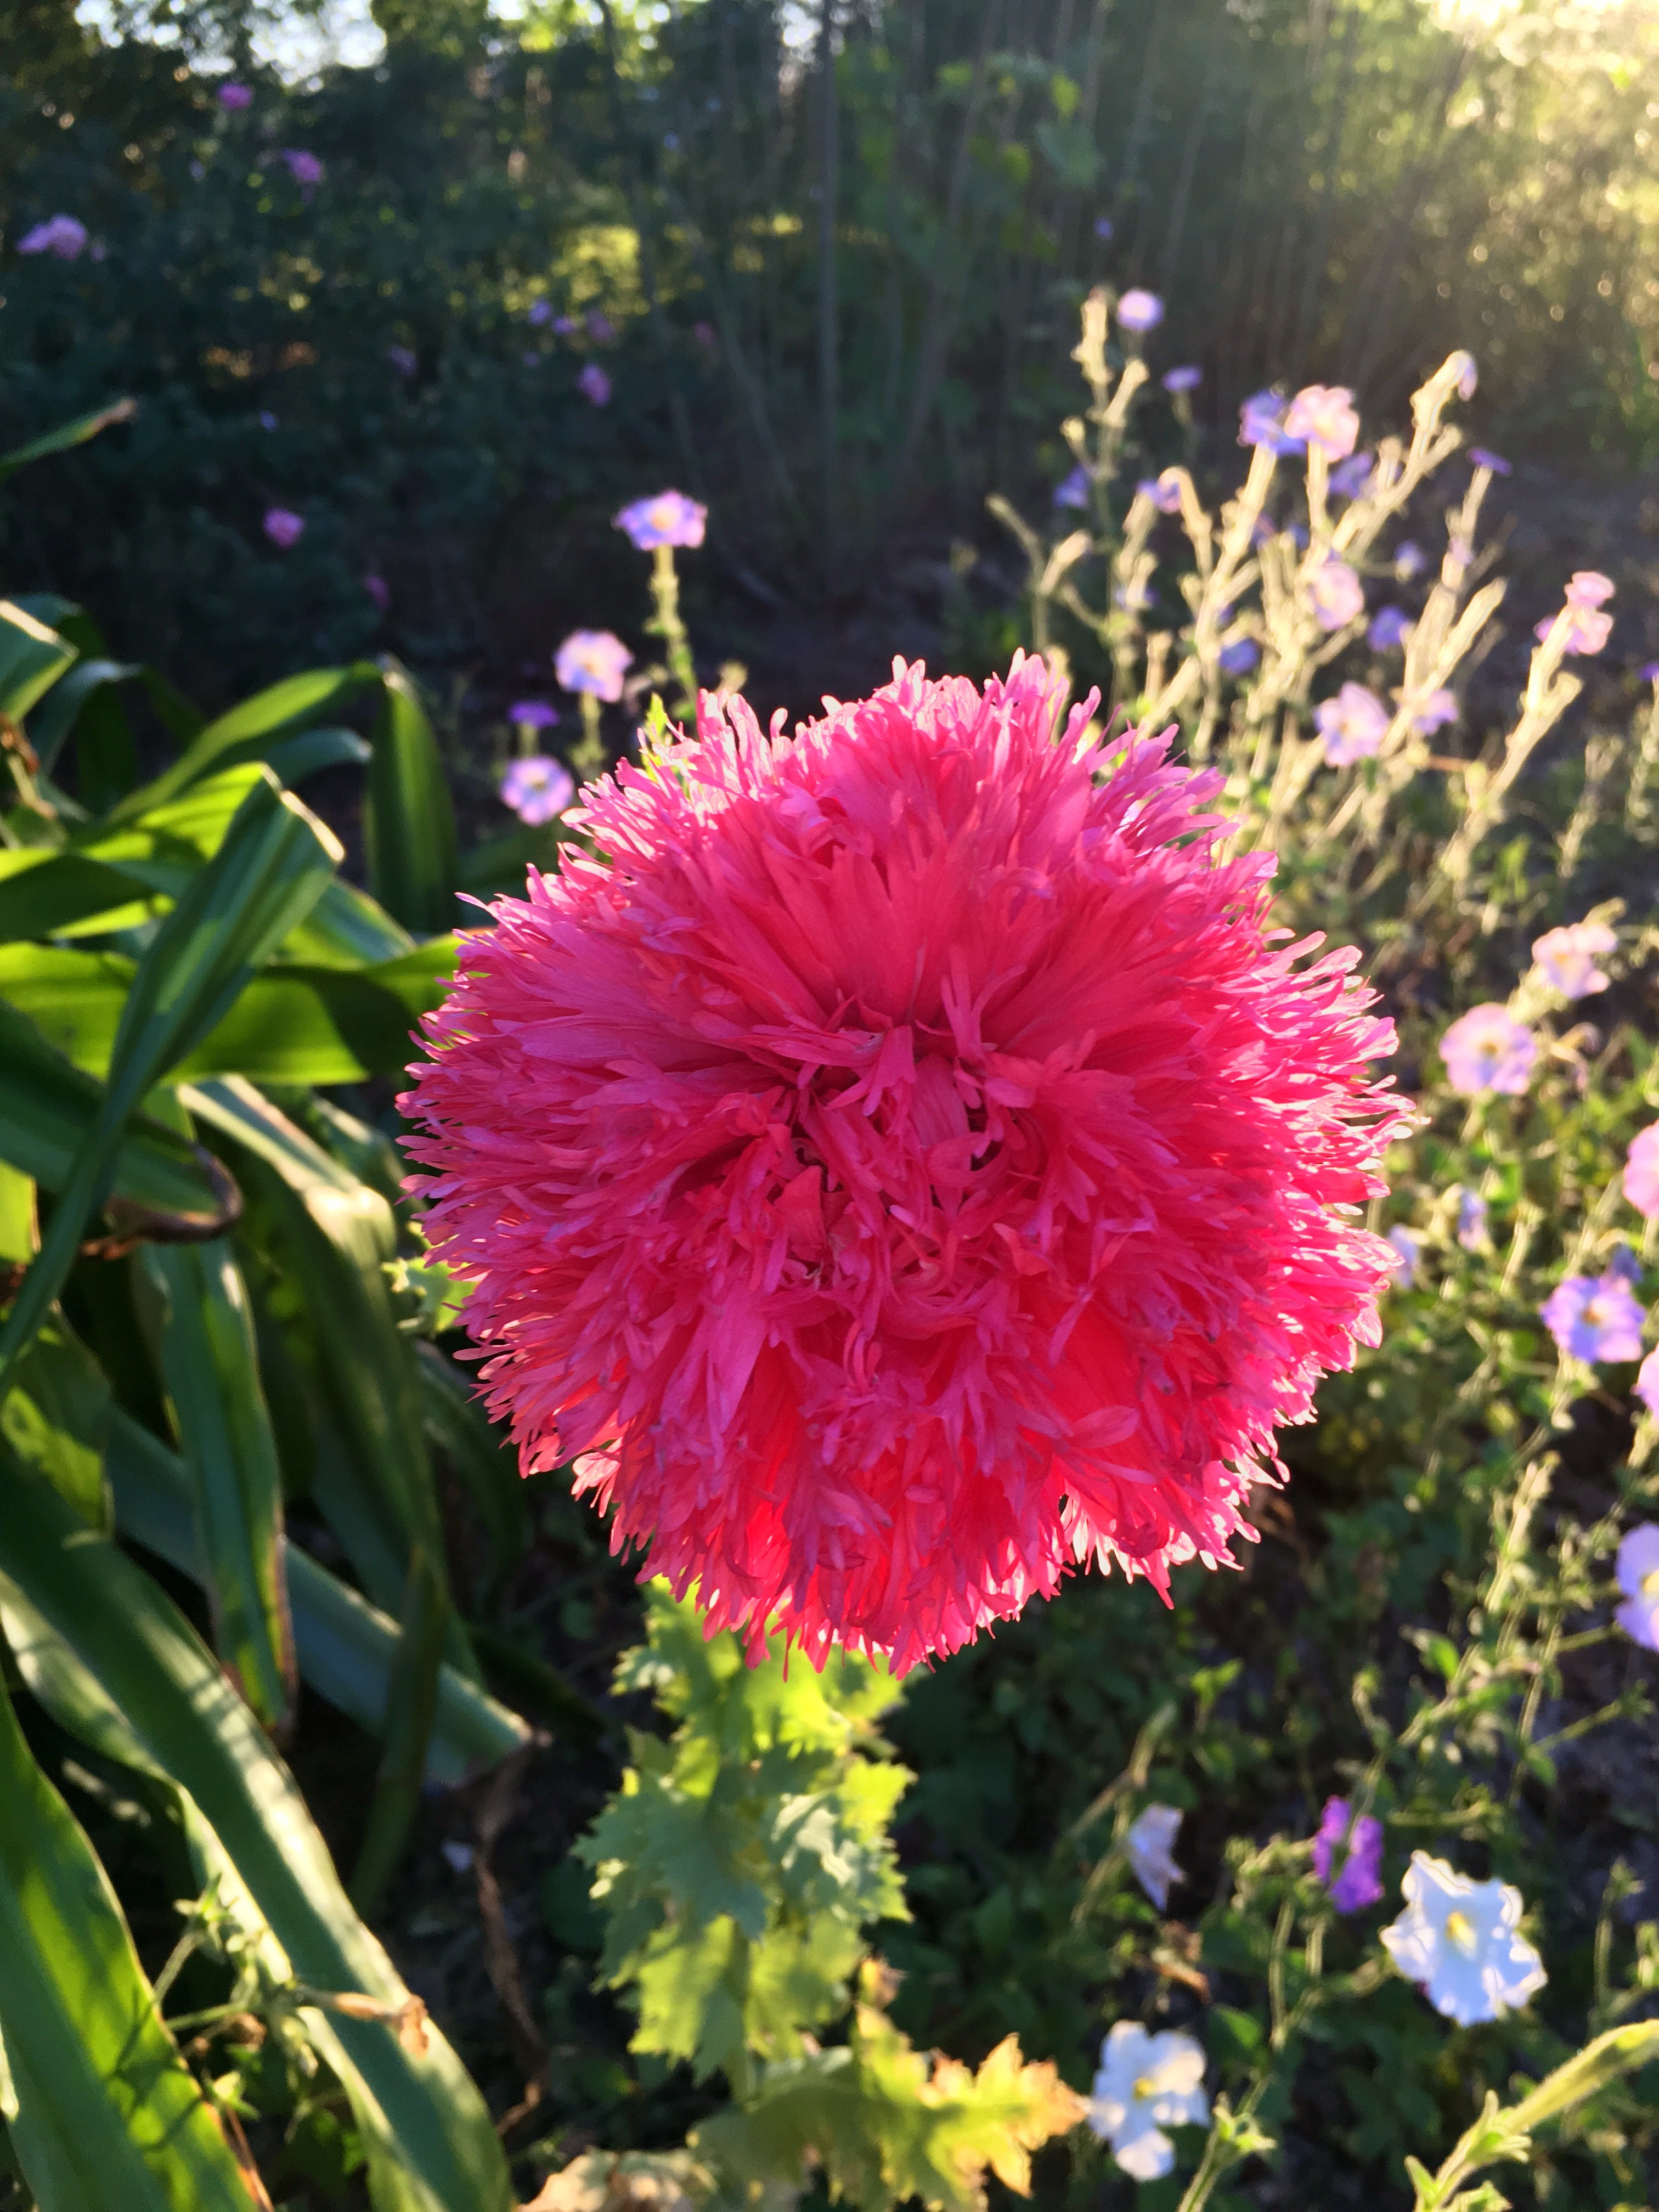 A stunning peony poppy flower obtained in the mystic hour as the sun set on the Georgia property of my 98-year-old friend.